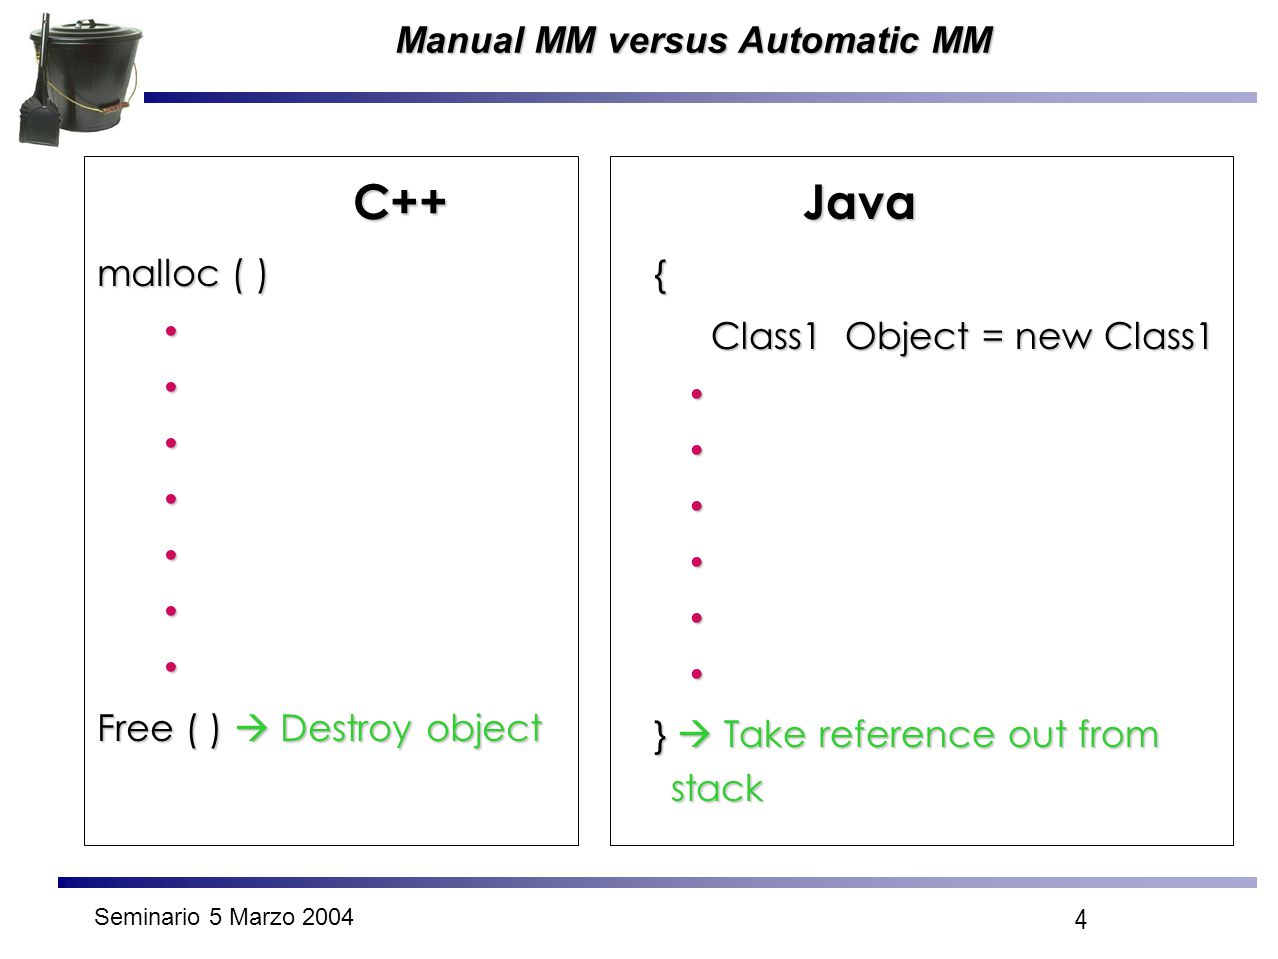 Seminario 5 Marzo 2004 4 Manual MM versus Automatic MM C++ malloc ( ) Free ( )  Destroy object Java Java { Class1 Object = new Class1 Class1 Object =